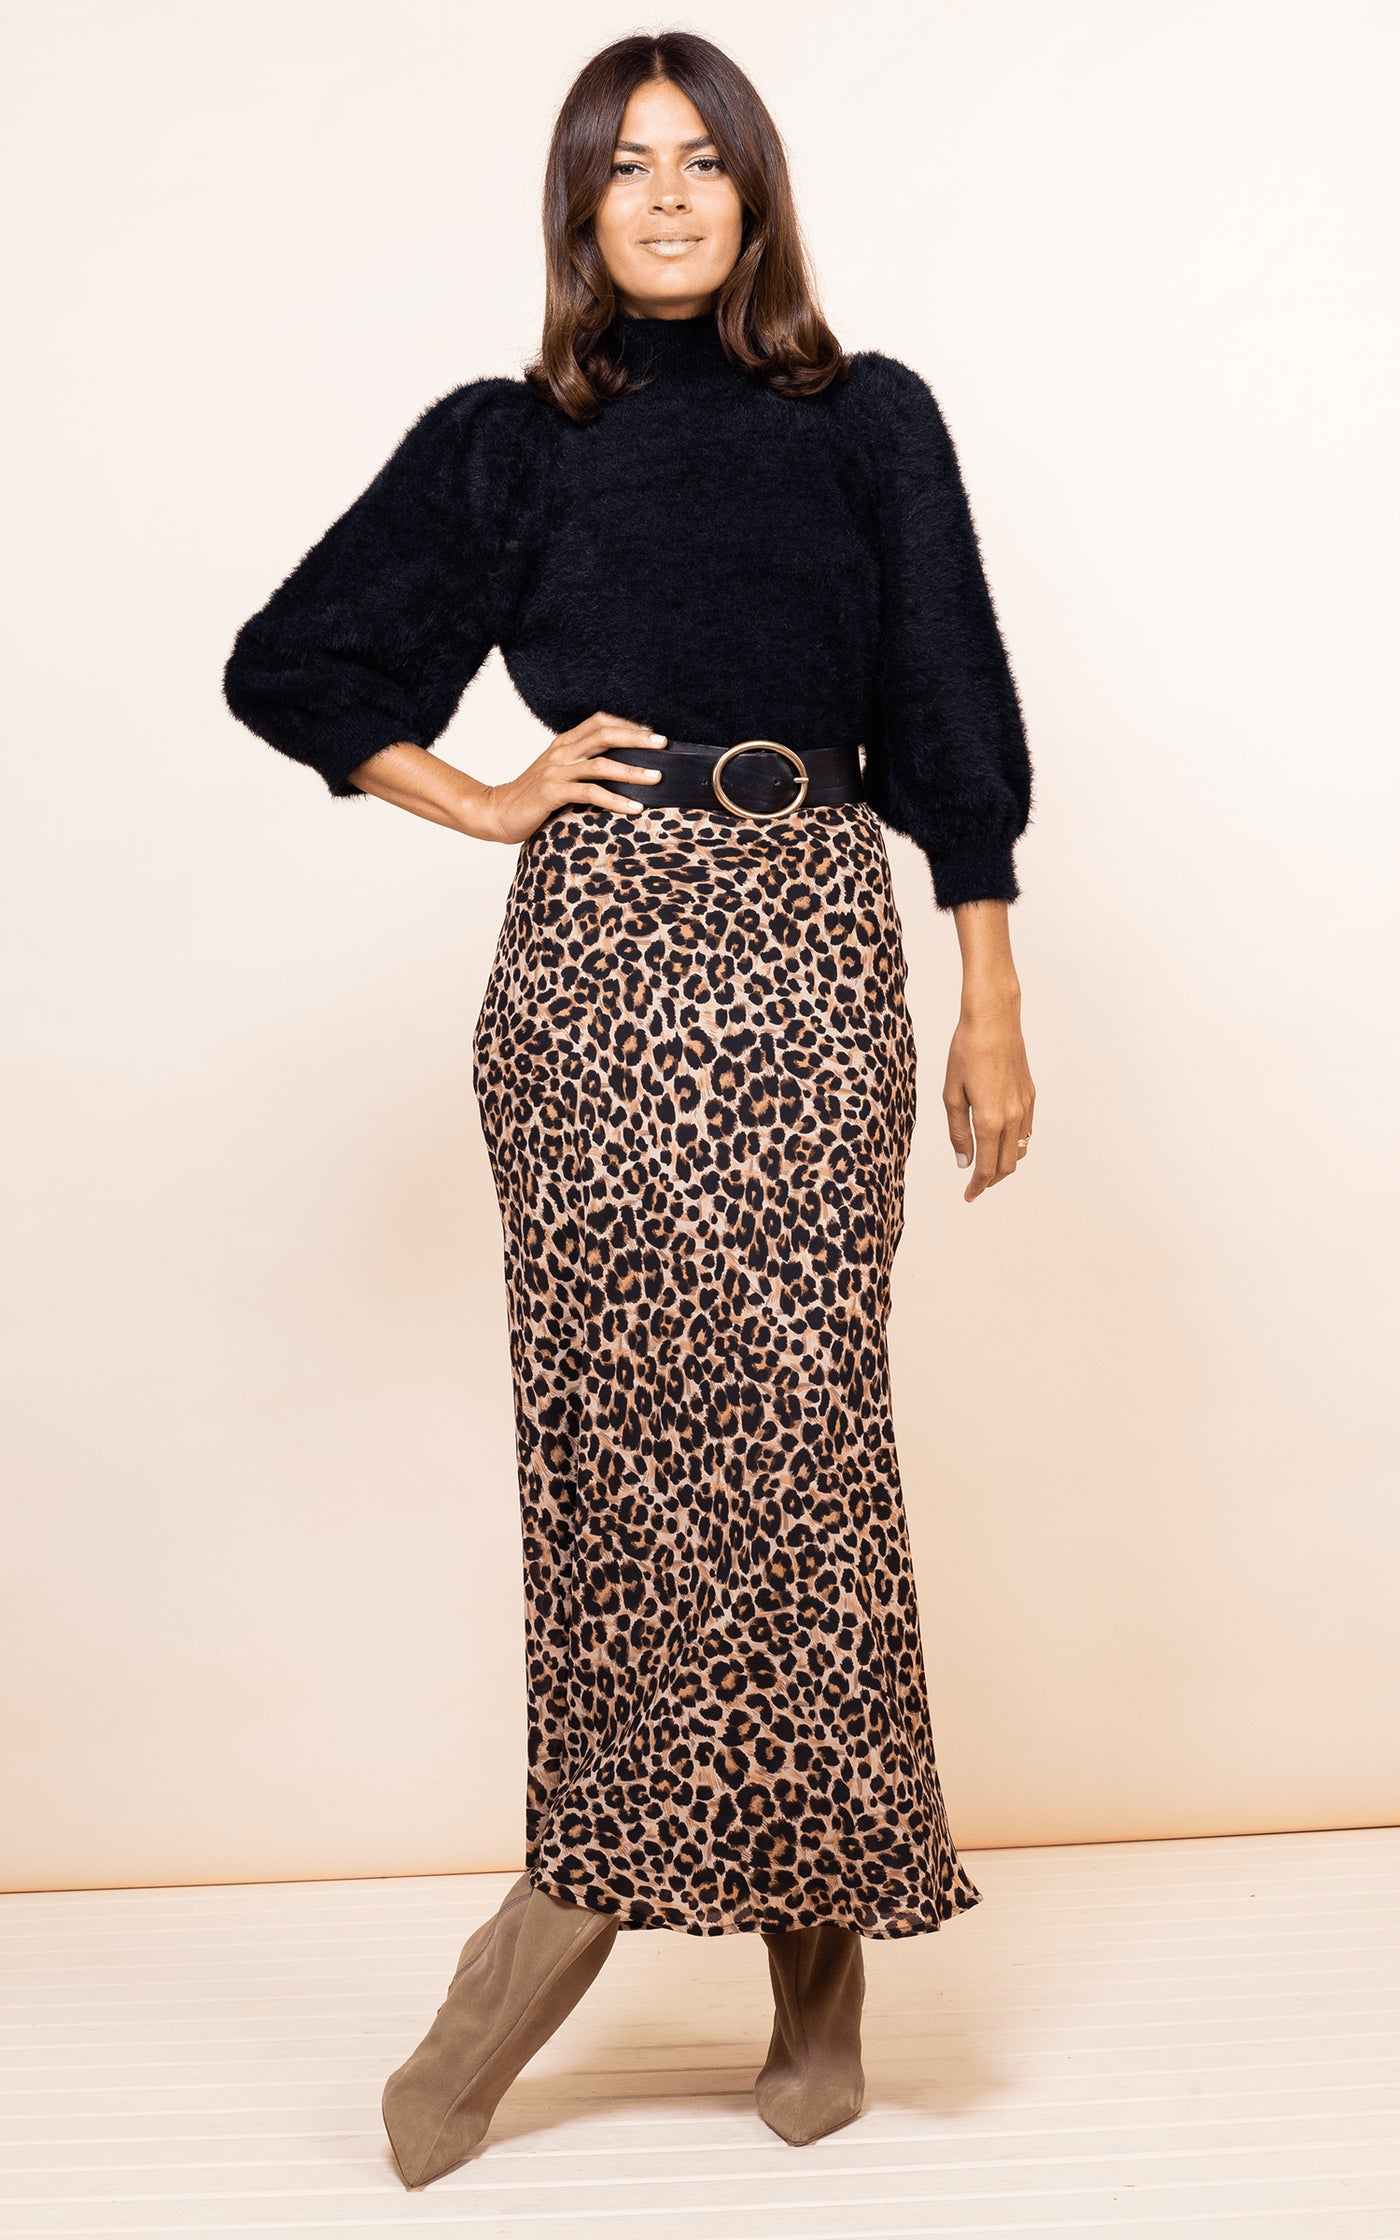 Dancing Leopard model faces forward wearing Sophie Skirt in Rich Leopard print with black fluffy jumper with hand on hip